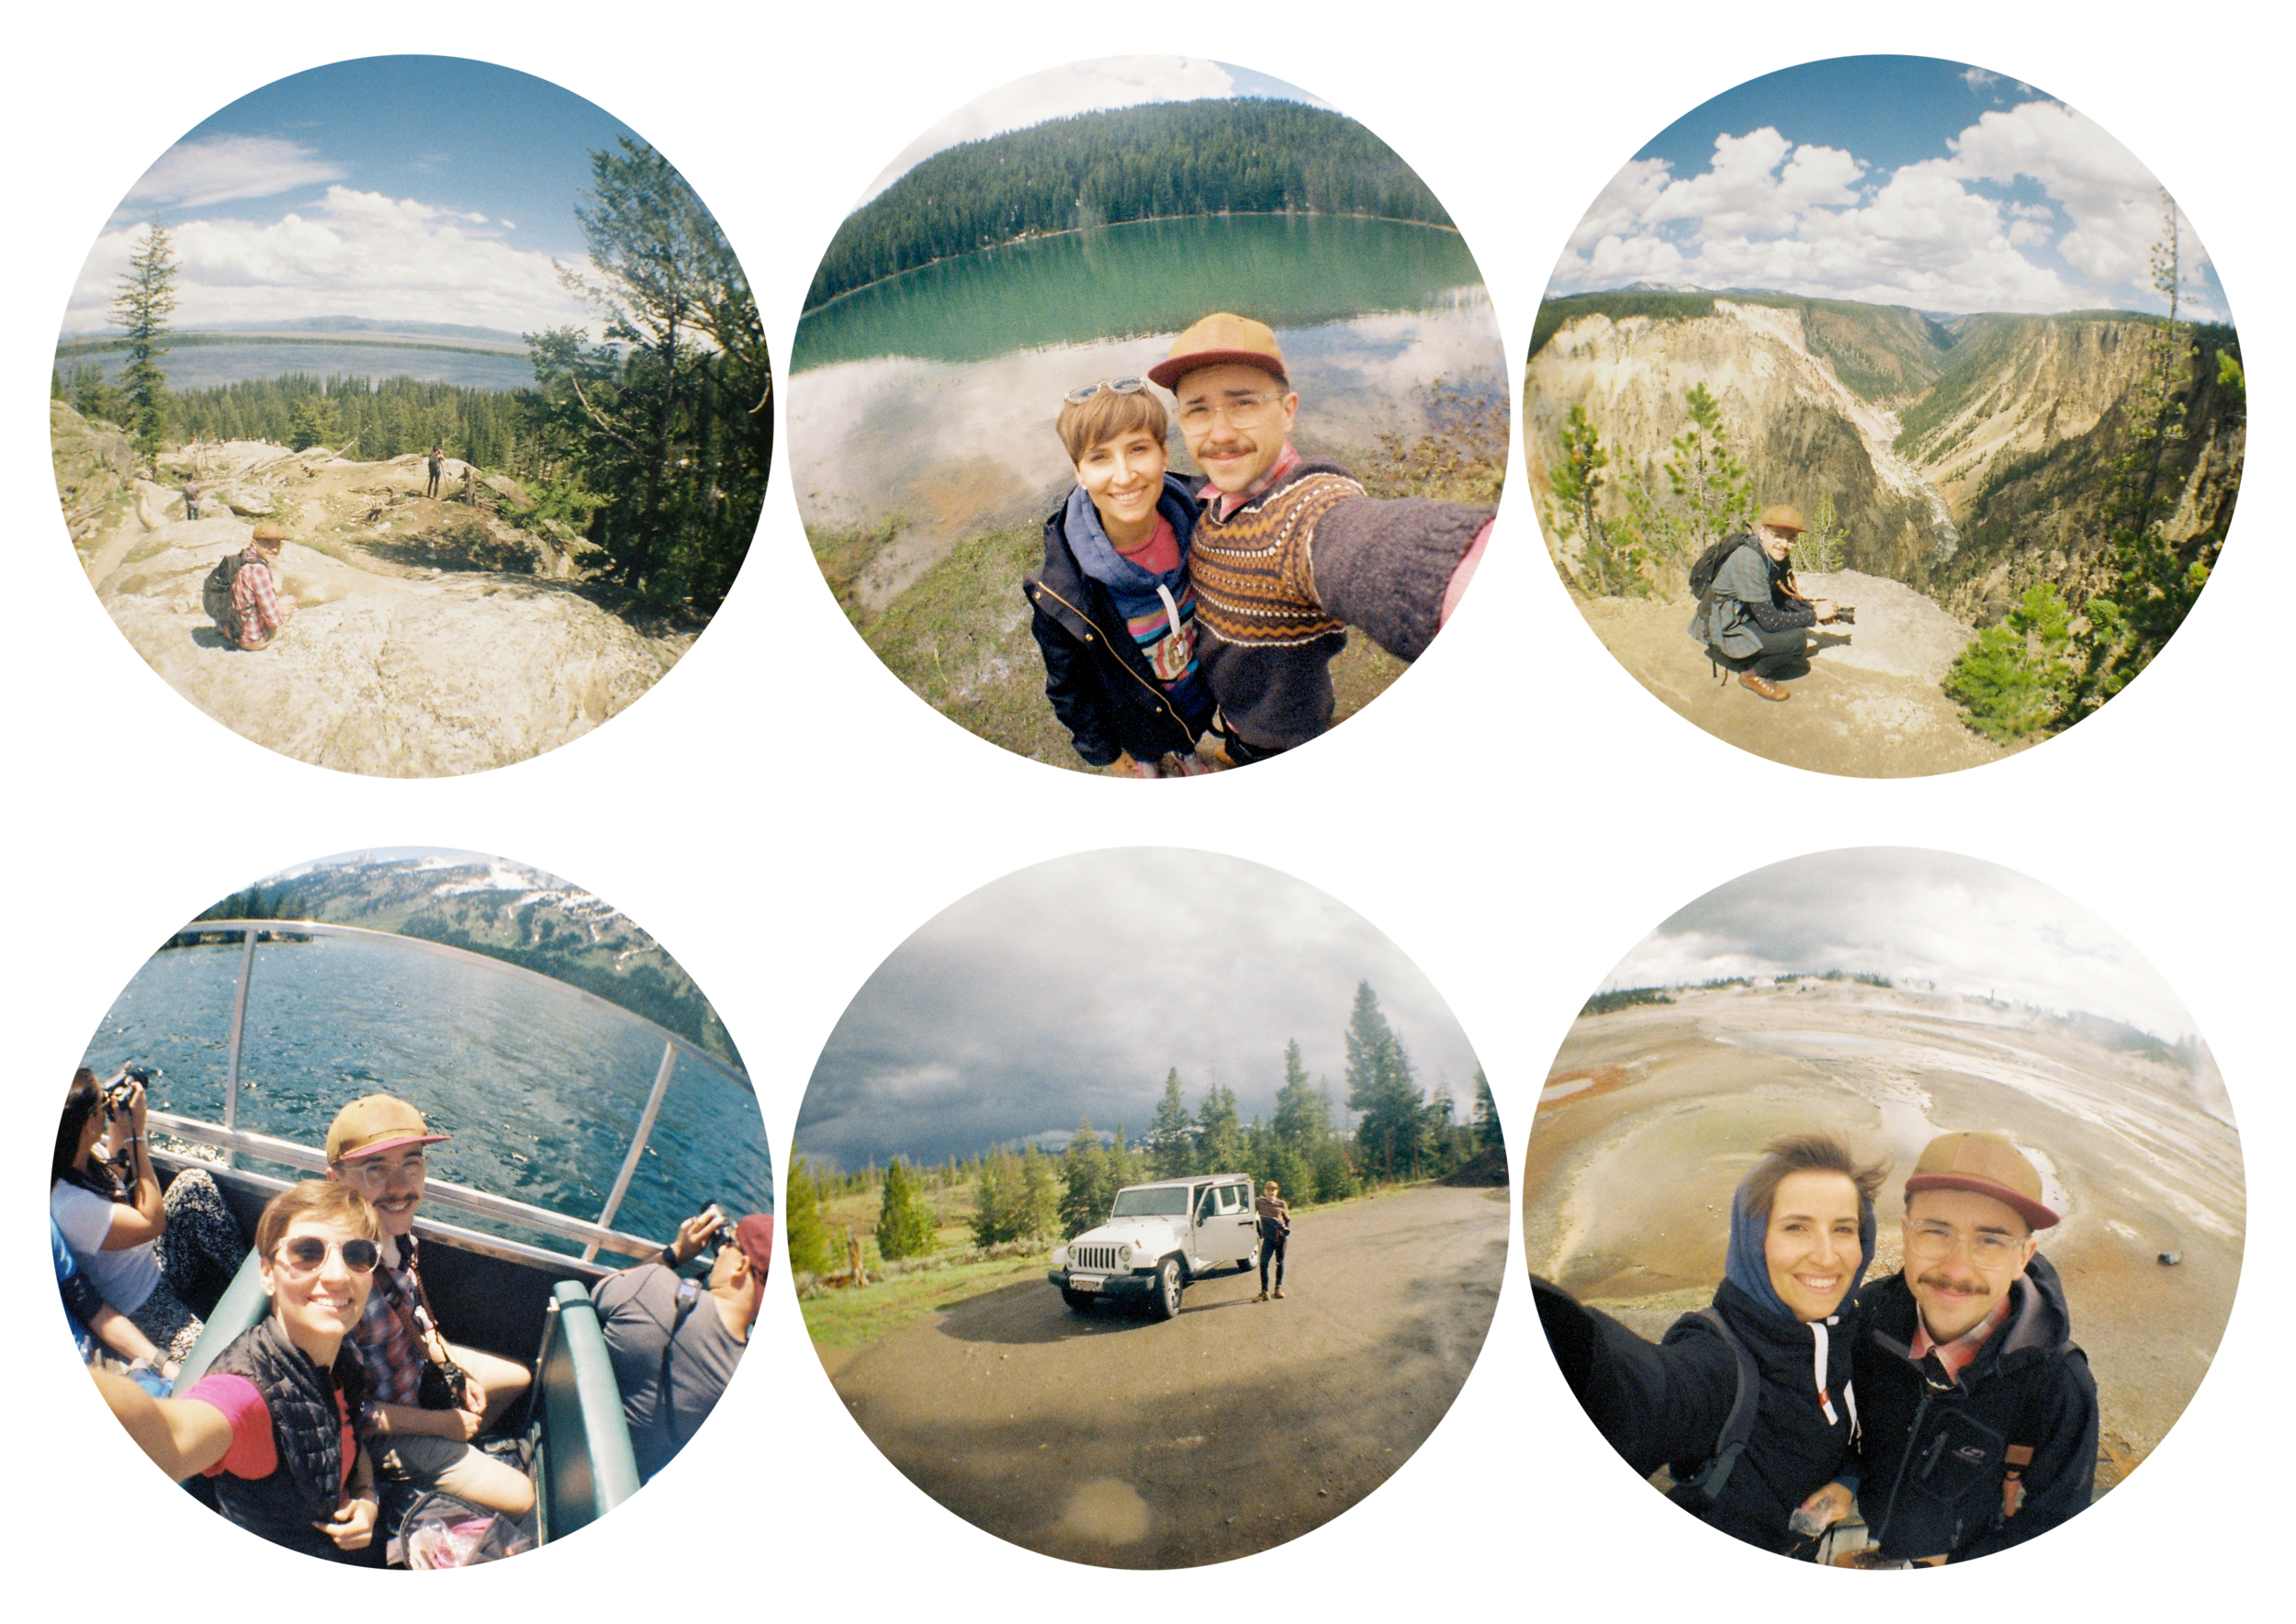 The Yellowstone from the fish-eye's perspective; photos by   Zuzi